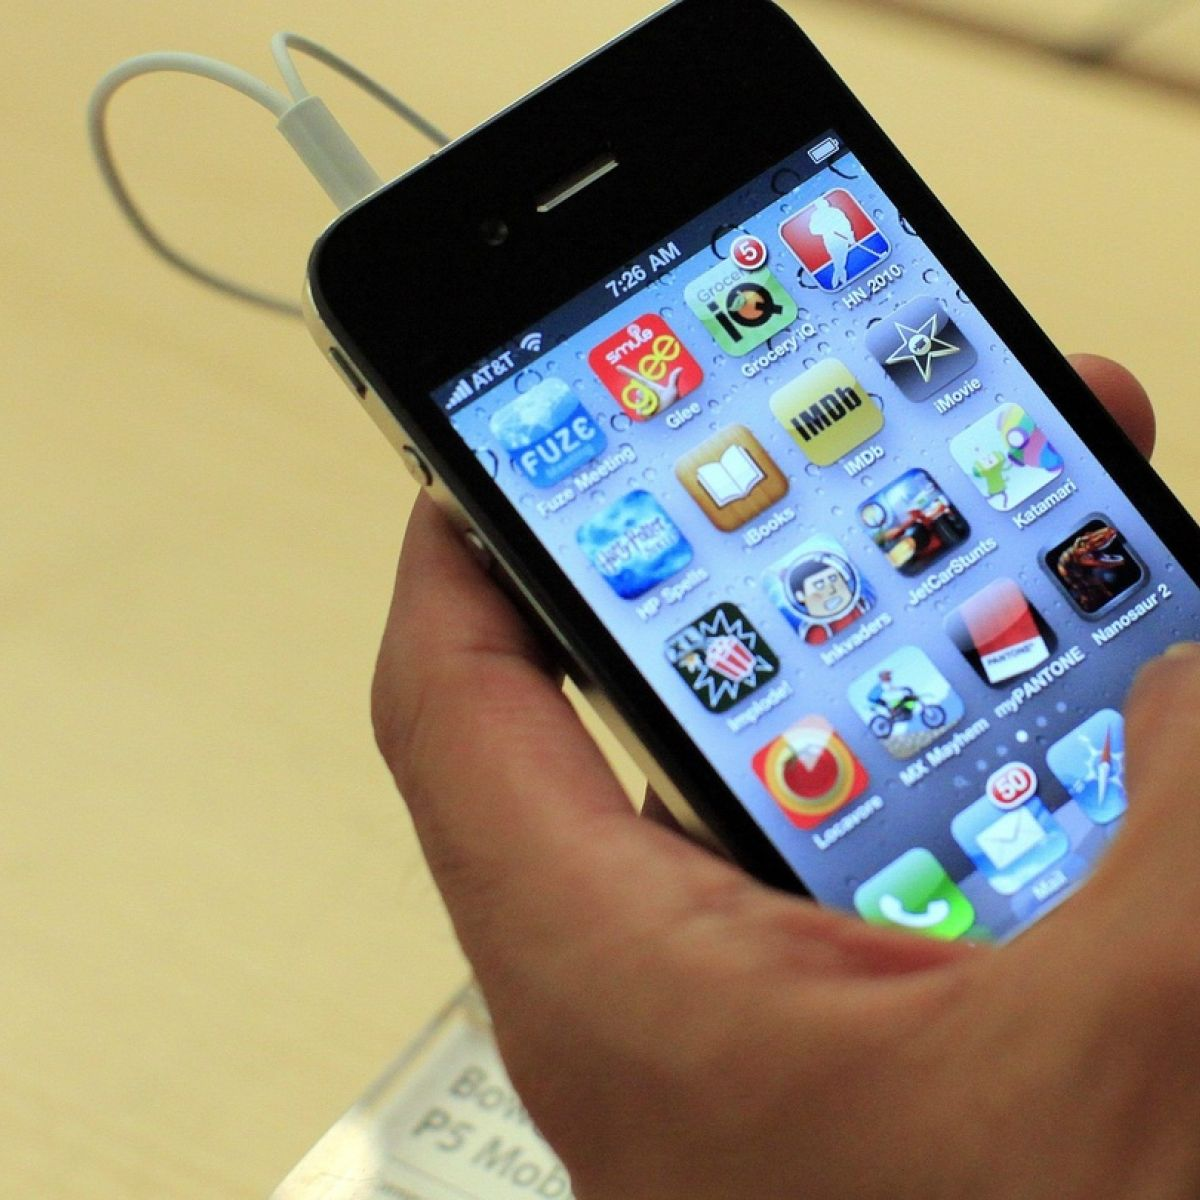 Mobile firm Three fined €575,000 over notification of